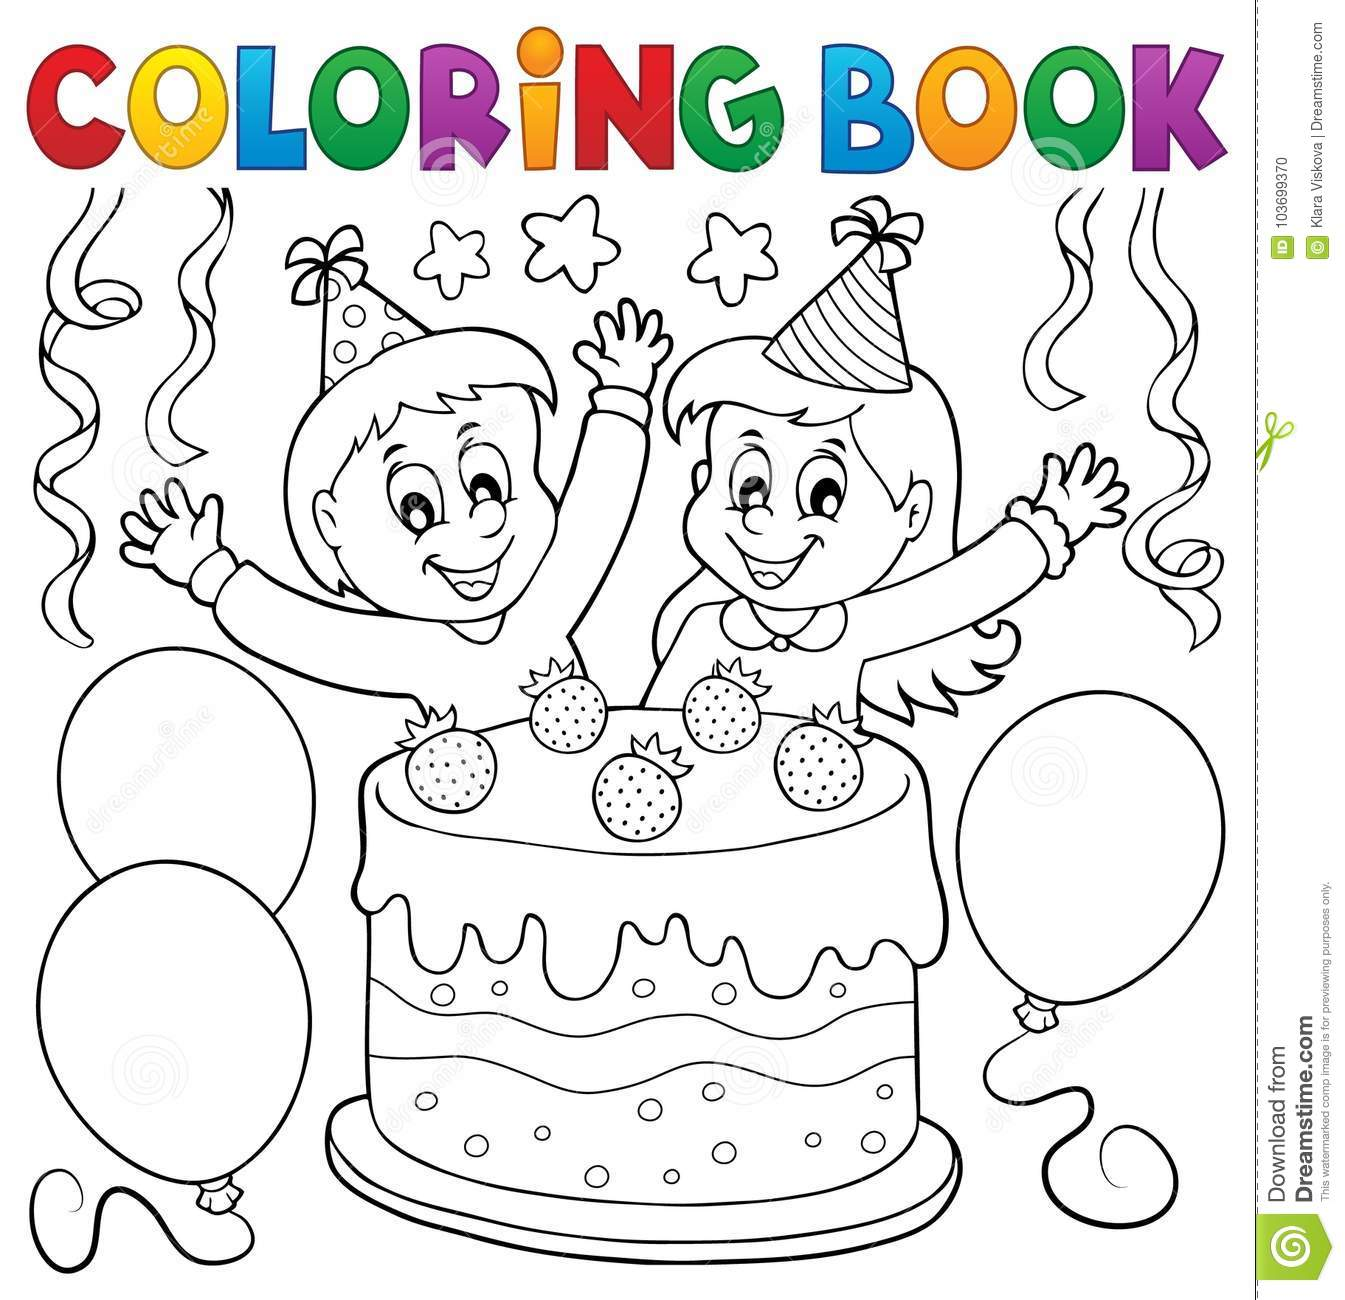 Coloring Book Cake And Kids Celebrating Stock Vector - Illustration ...